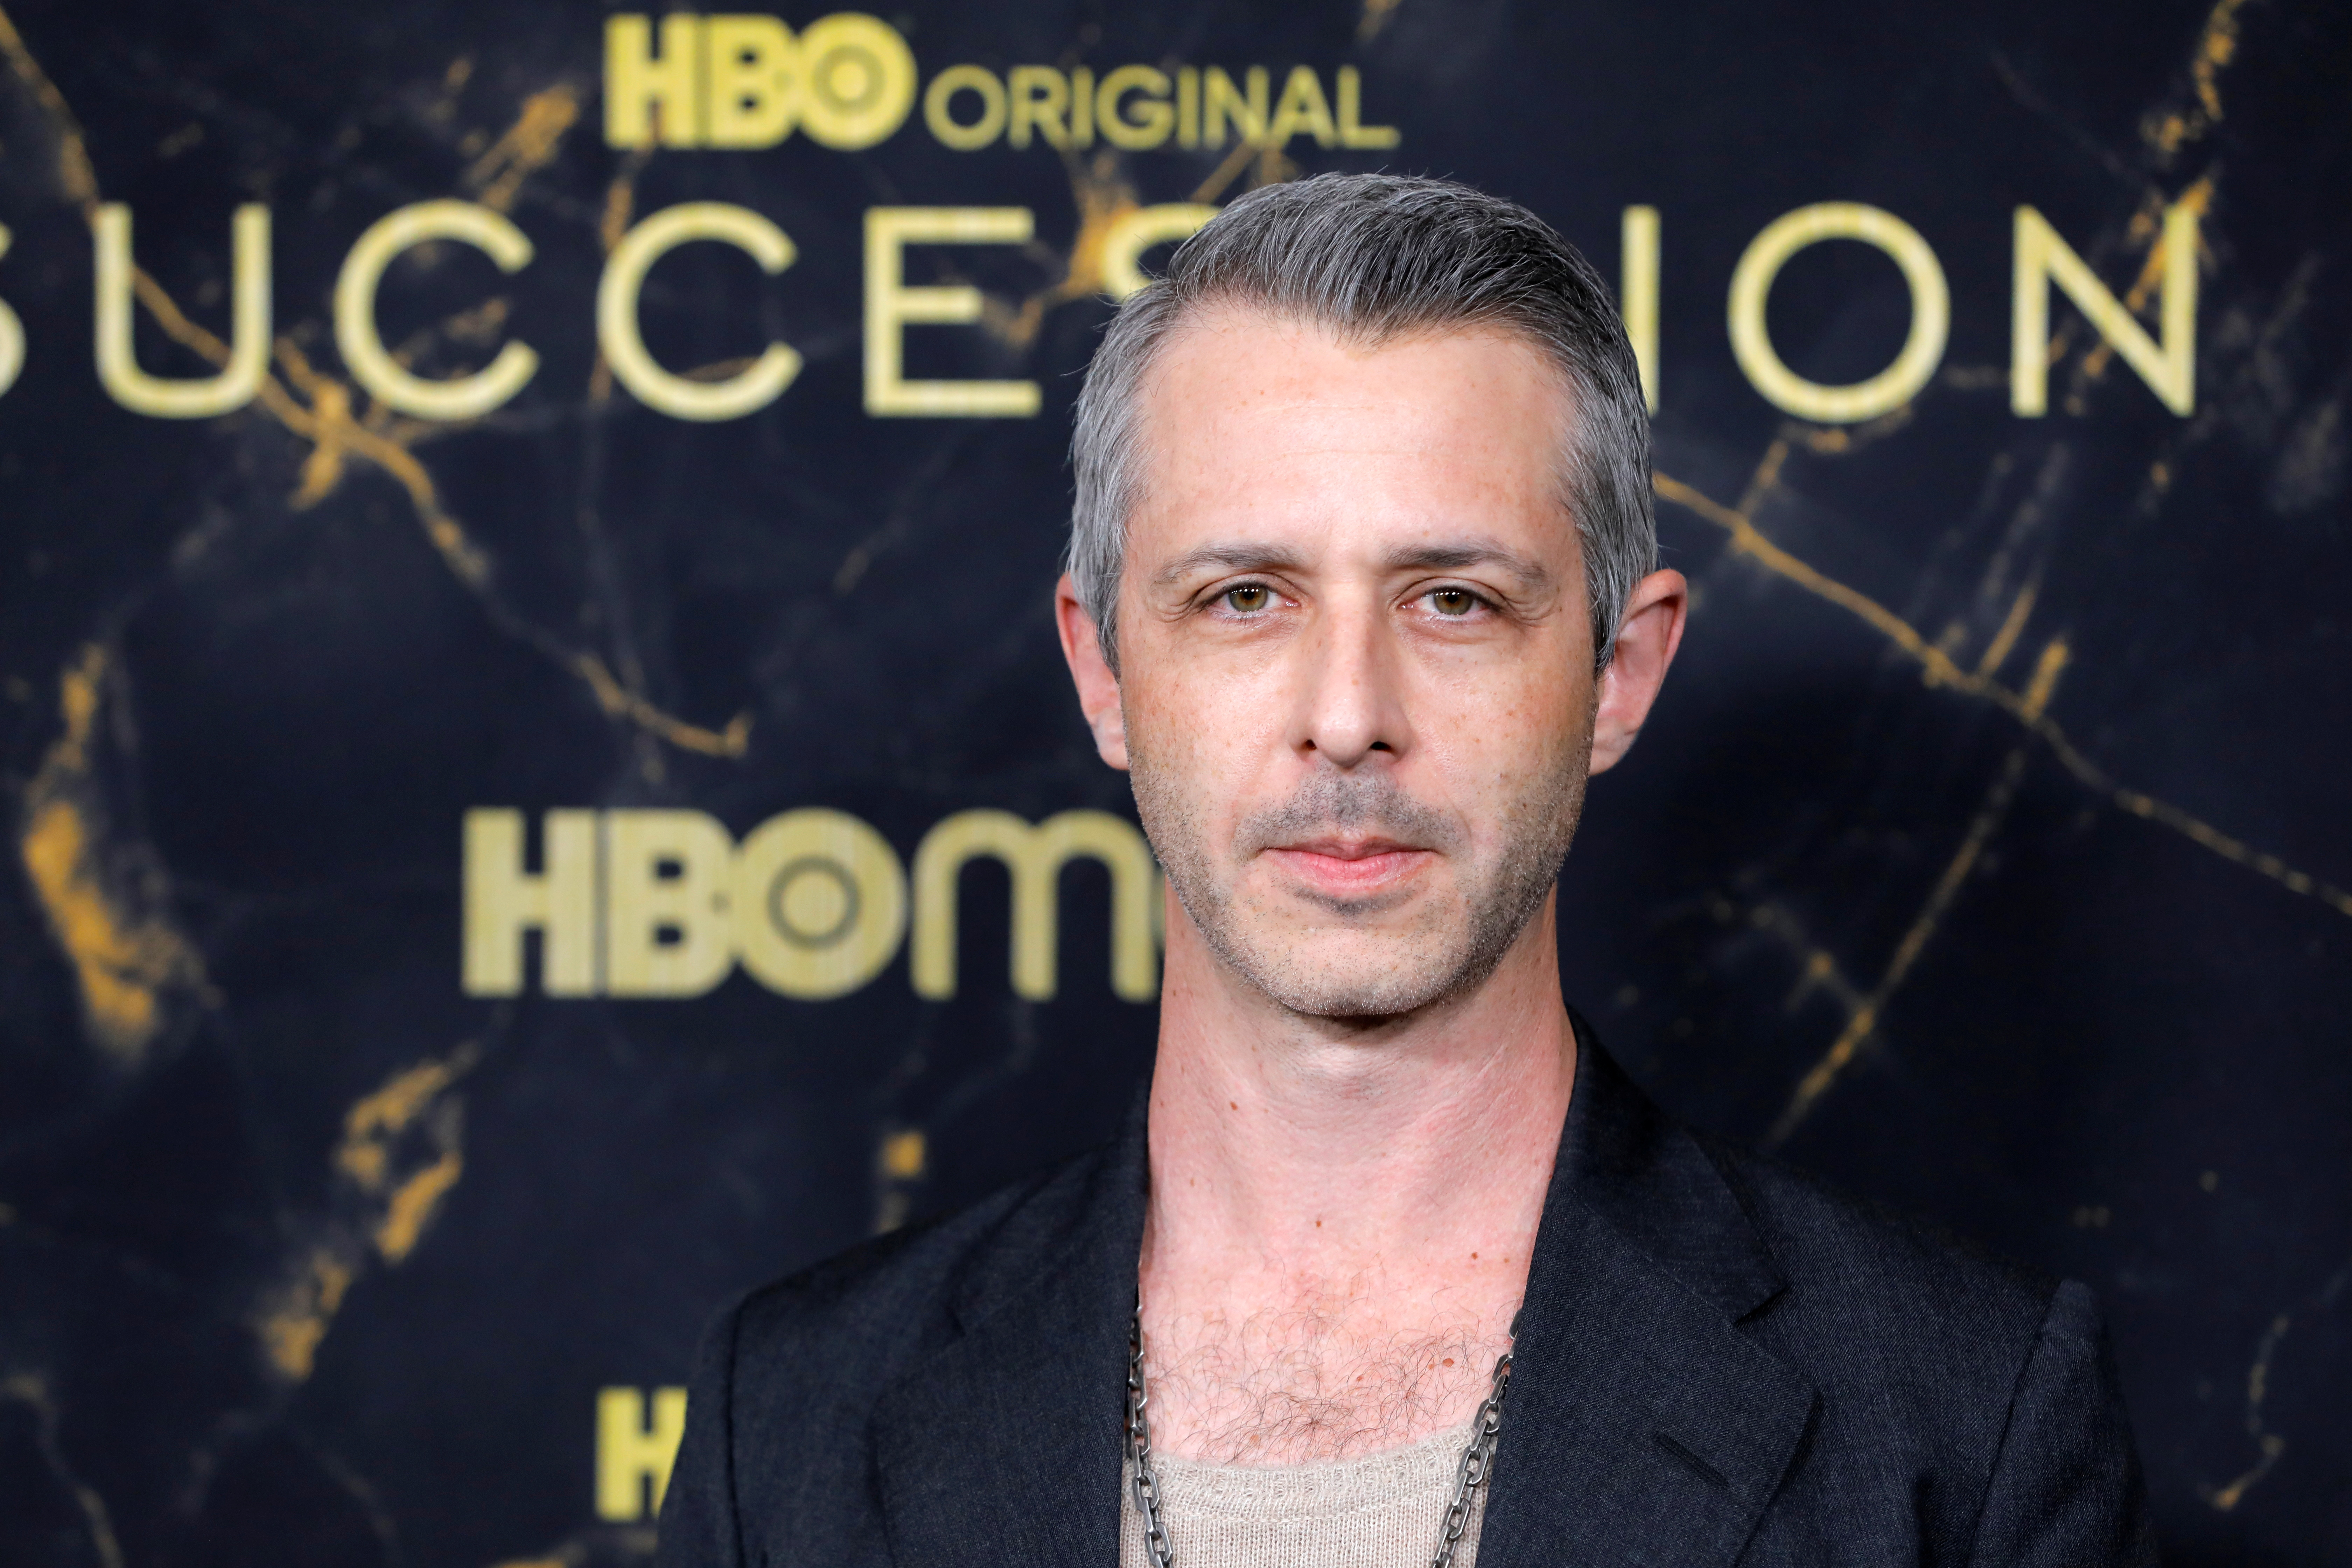 Jeremy Strong poses while attending the premiere of the third season of